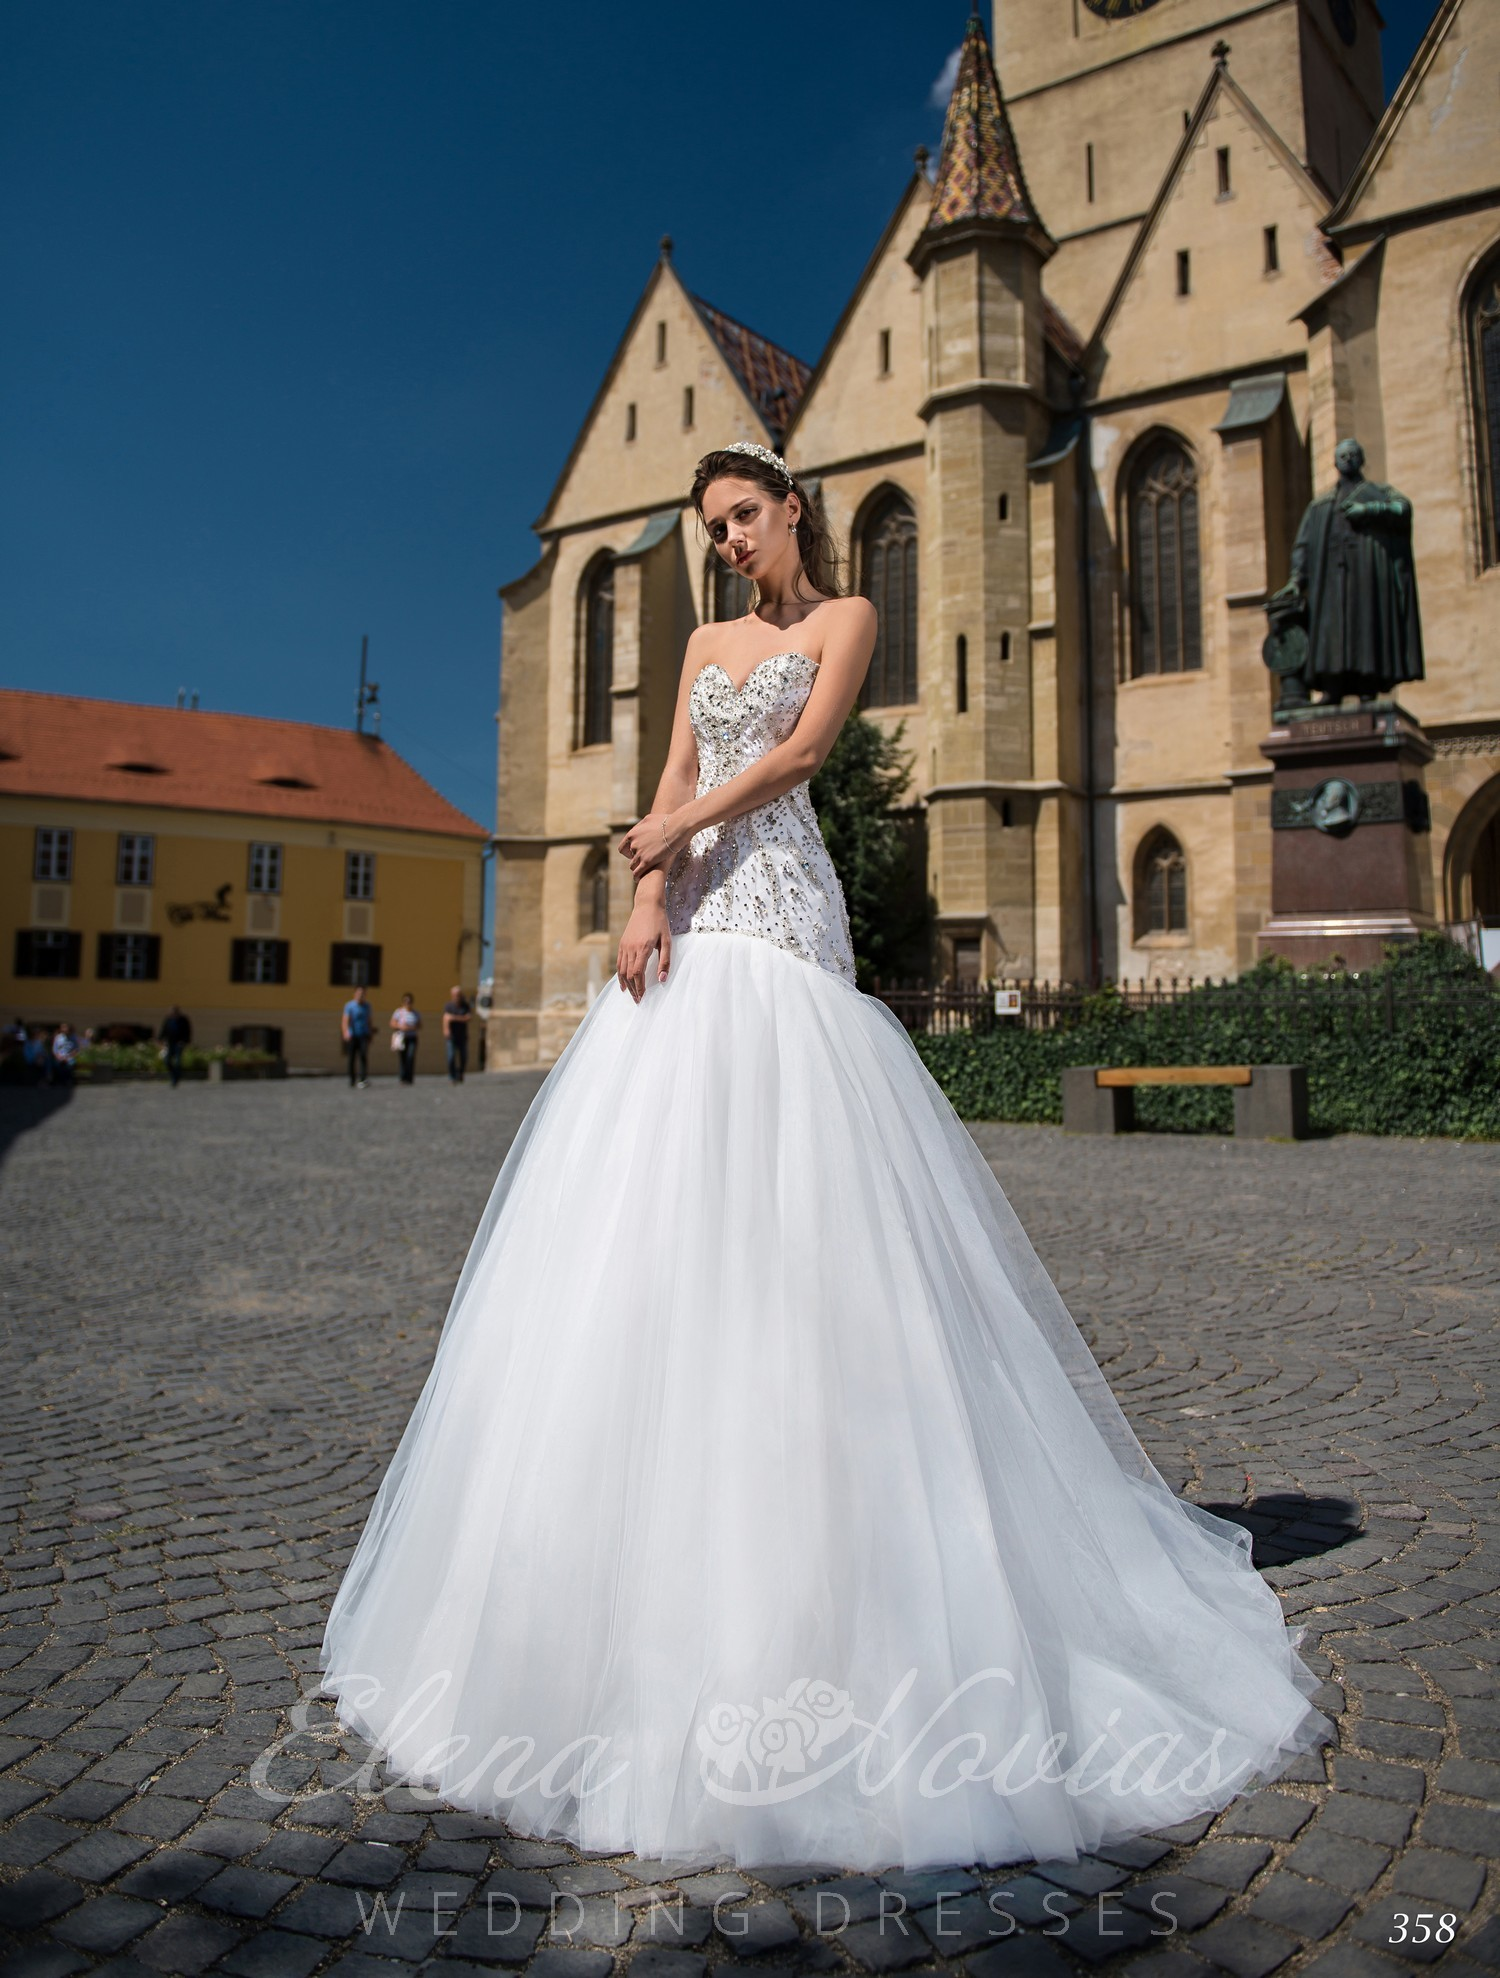 Wedding dress wholesale 358